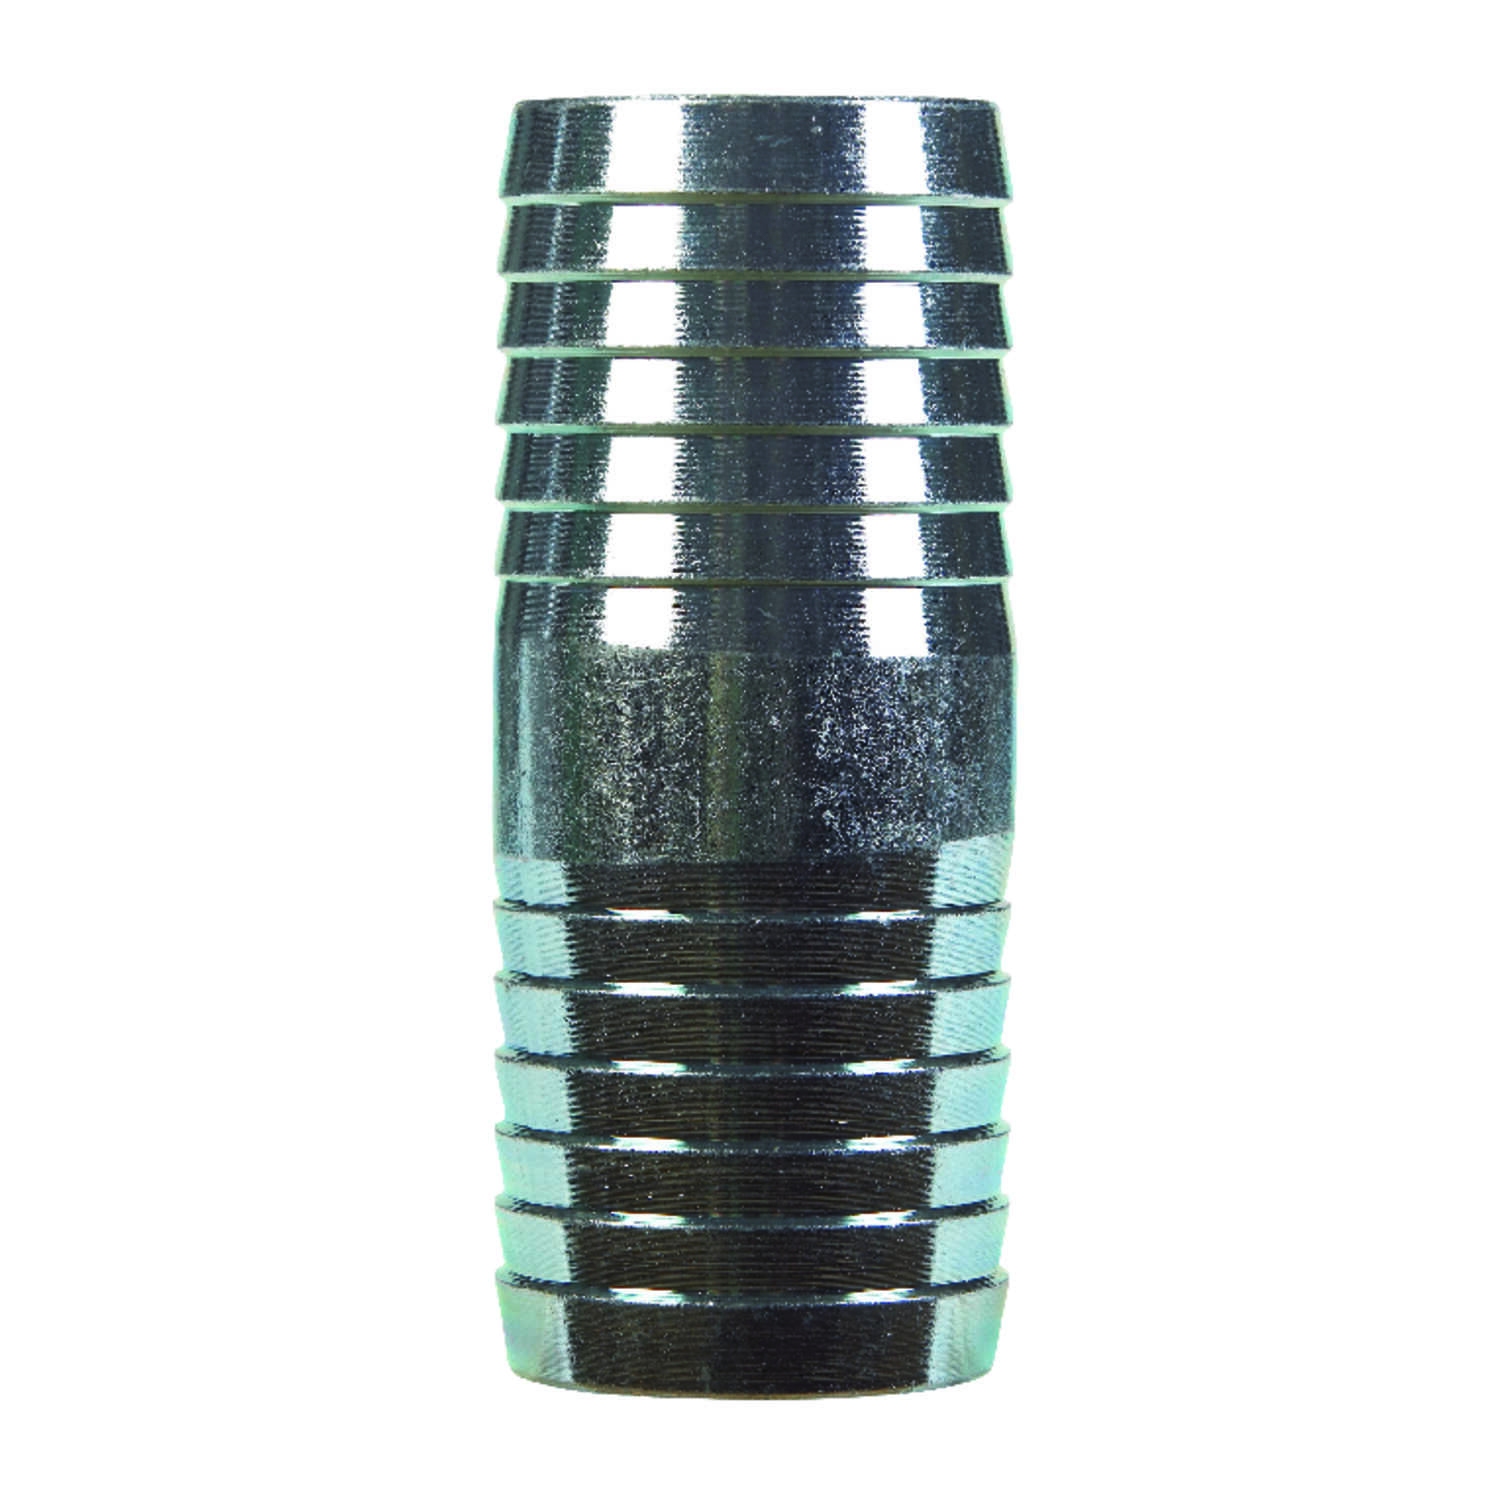 B & K  1-1/4 in. Barb   x 1-1/4 in. Dia. Barb  Galvanized Steel  Coupling